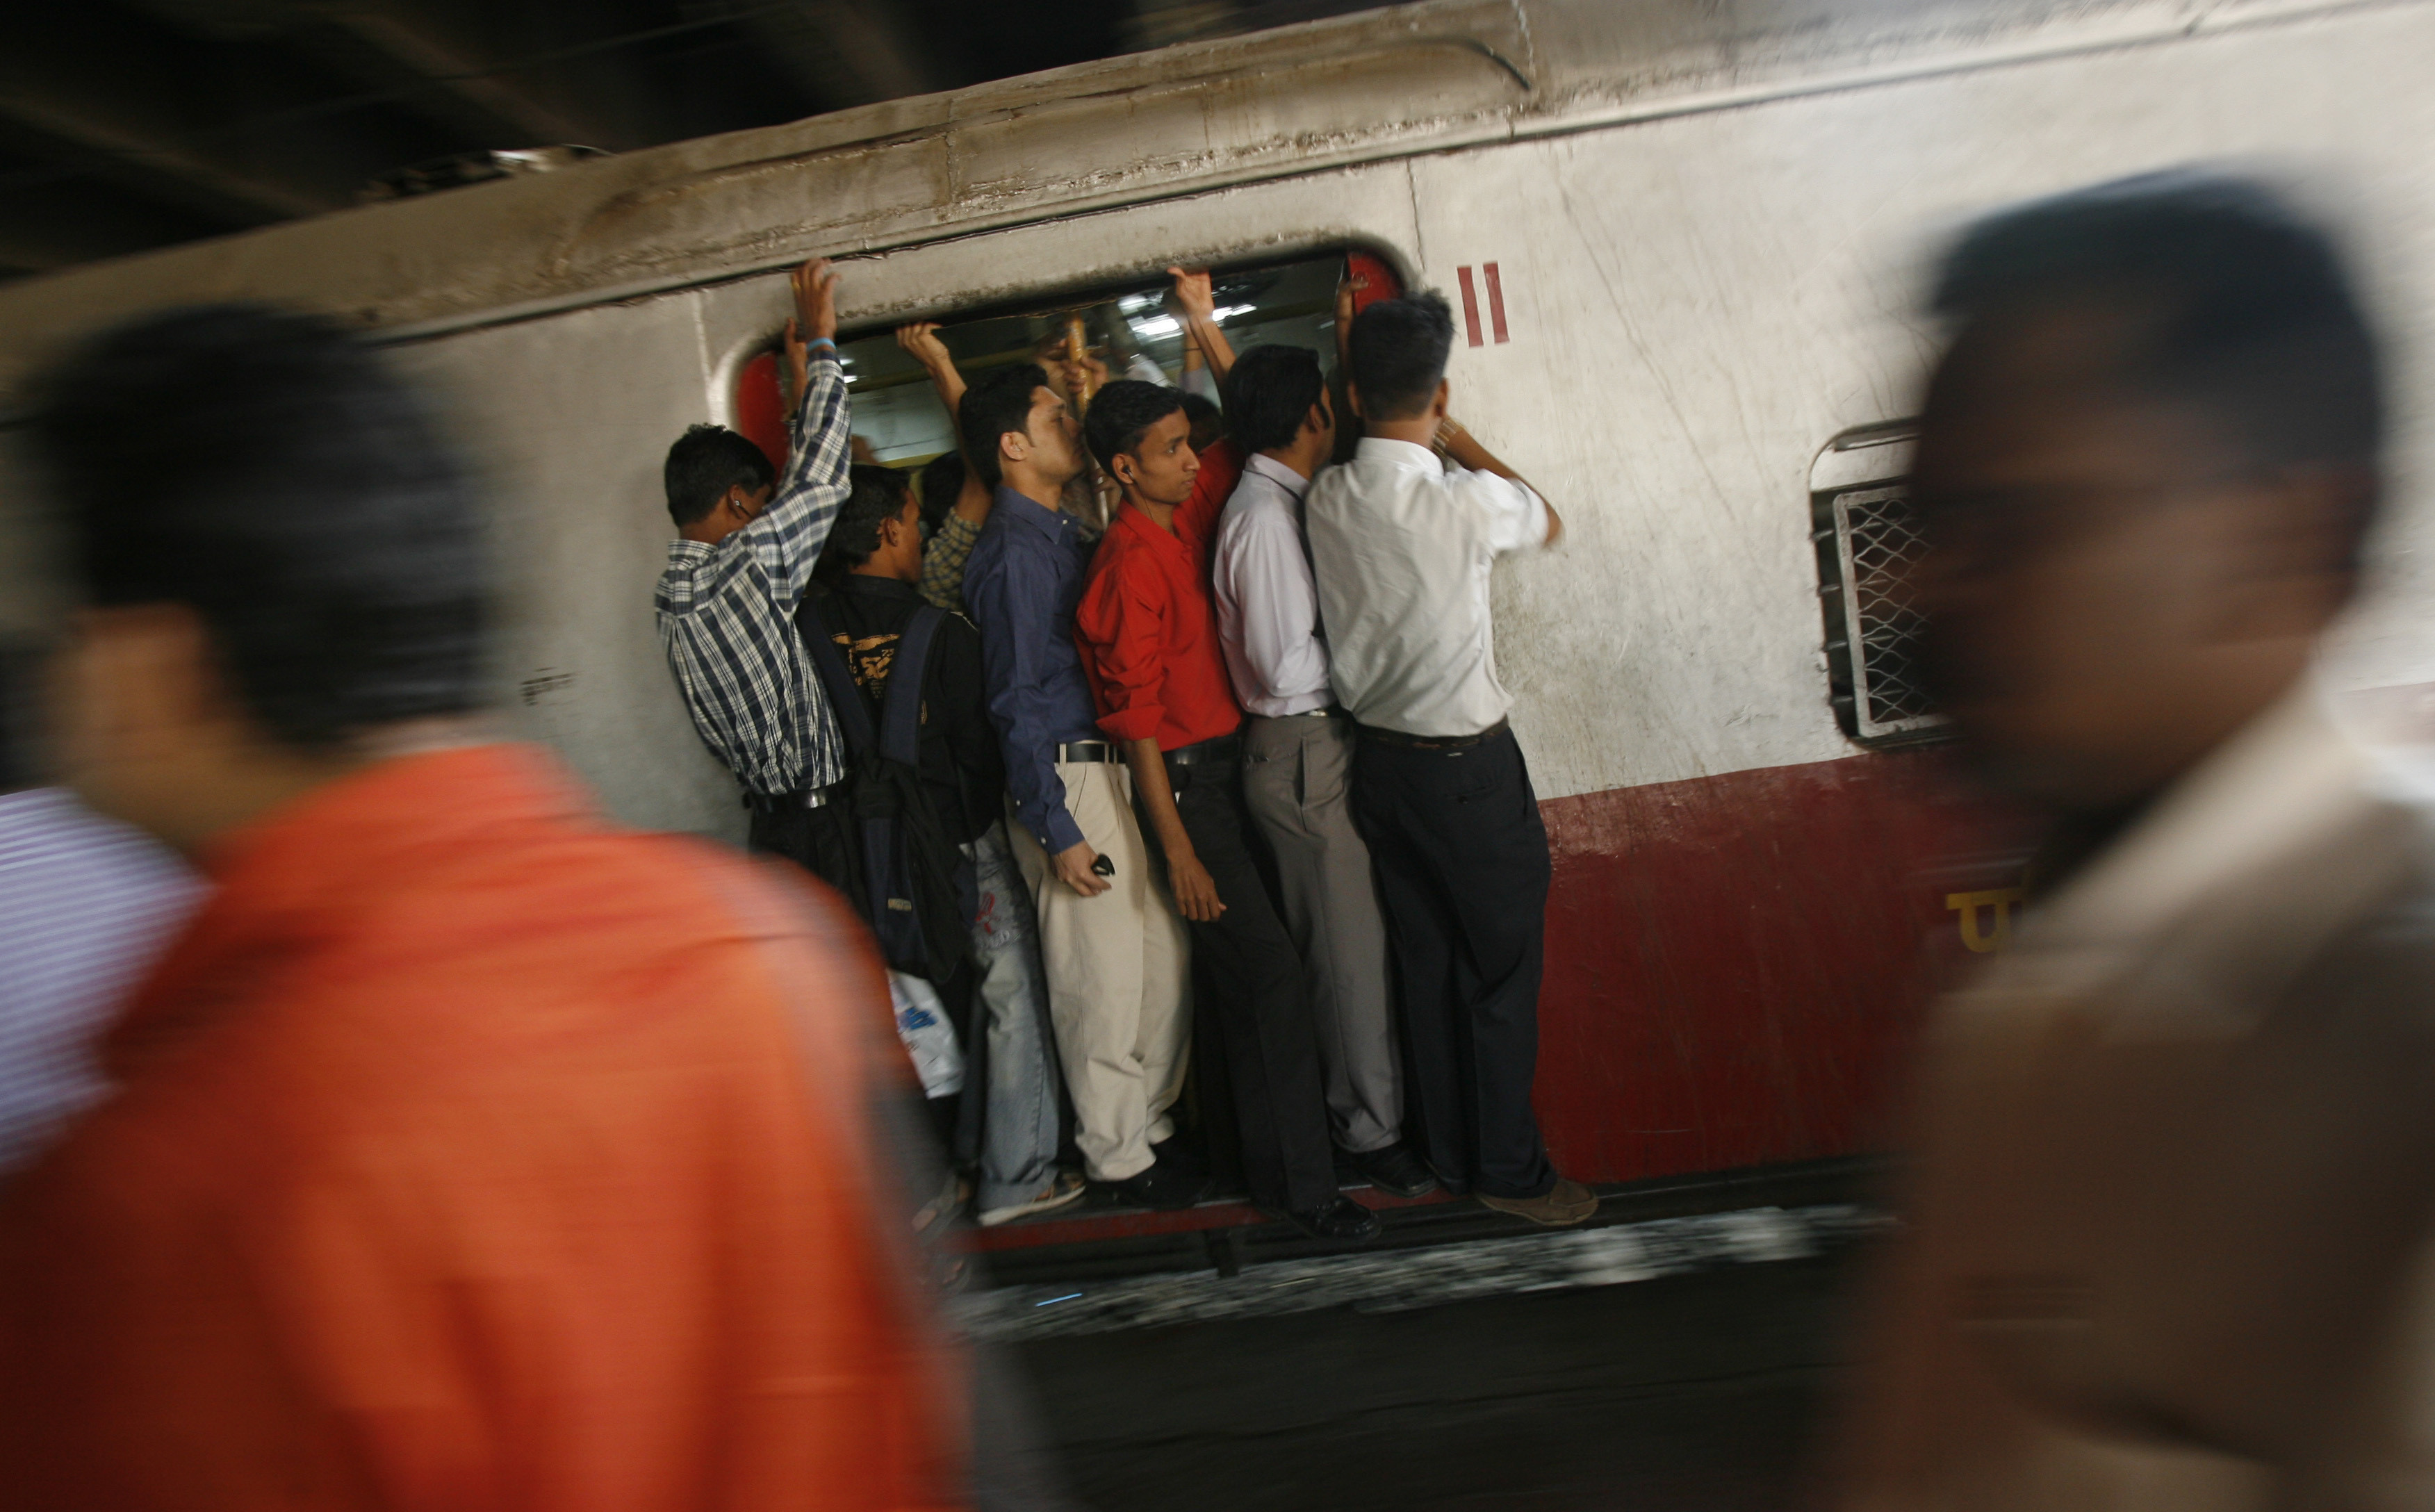 Passengers travel in a crowded suburban train at a railway station in Mumbai February 26, 2008. India's Railways Minister Lalu Prasad Yadav announced a cut of 50 rupees ($1.25) in passenger fares for express trains as he presented the annual budget for one of the world's largest networks on Tuesday.   REUTERS/Arko Datta (INDIA) - GM1E42Q1DYJ01